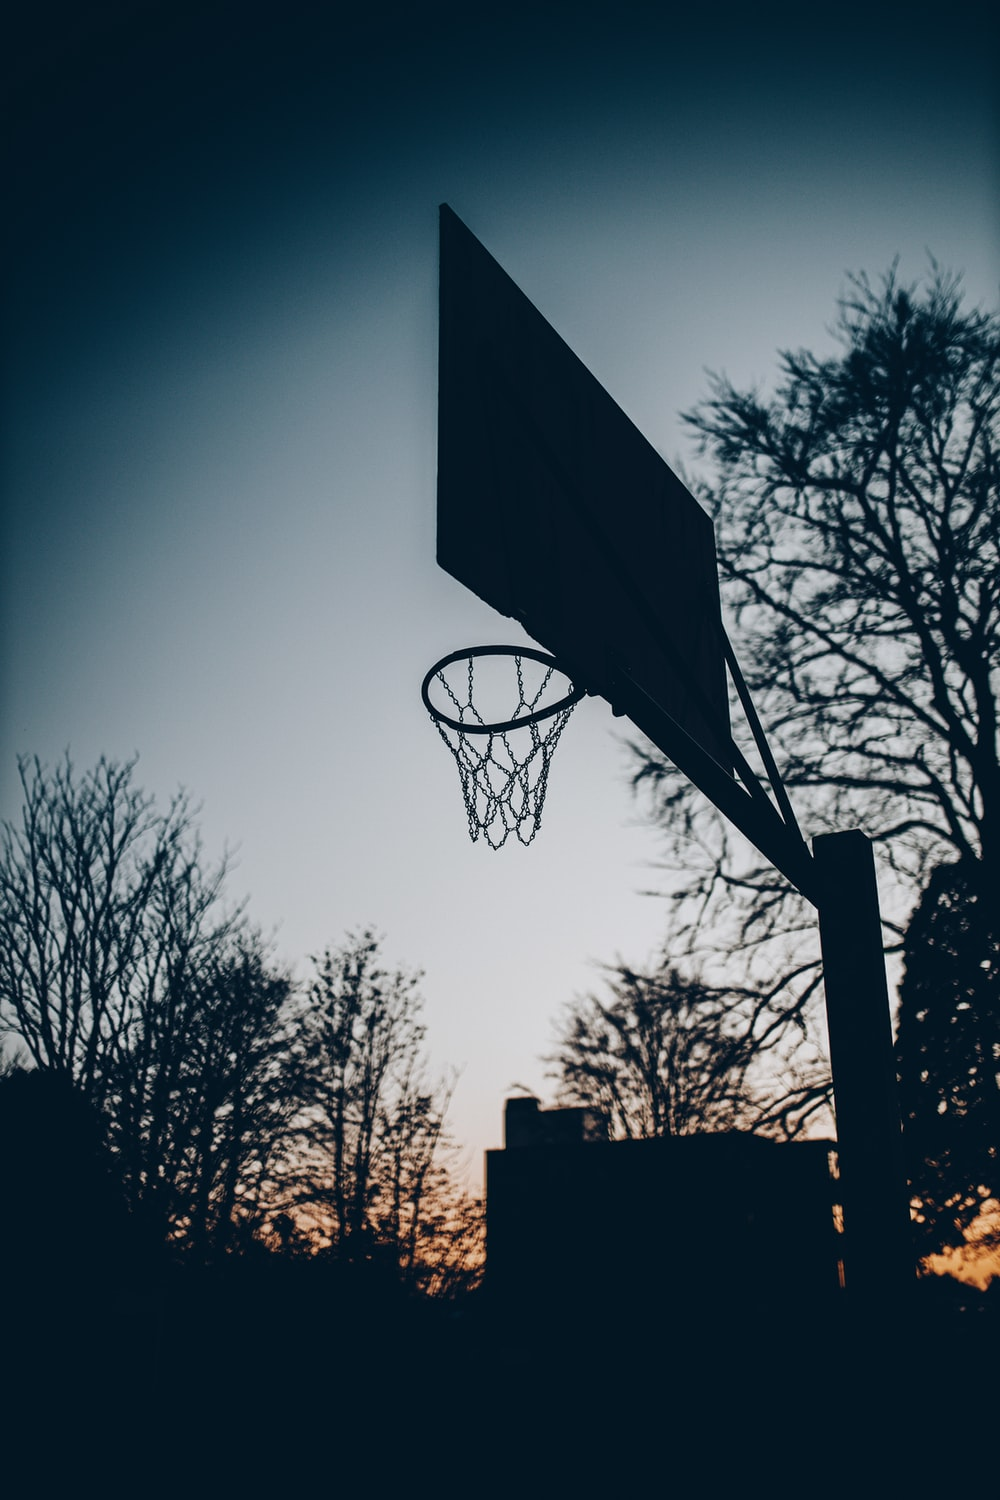 silhouette of basketball hoop during night time